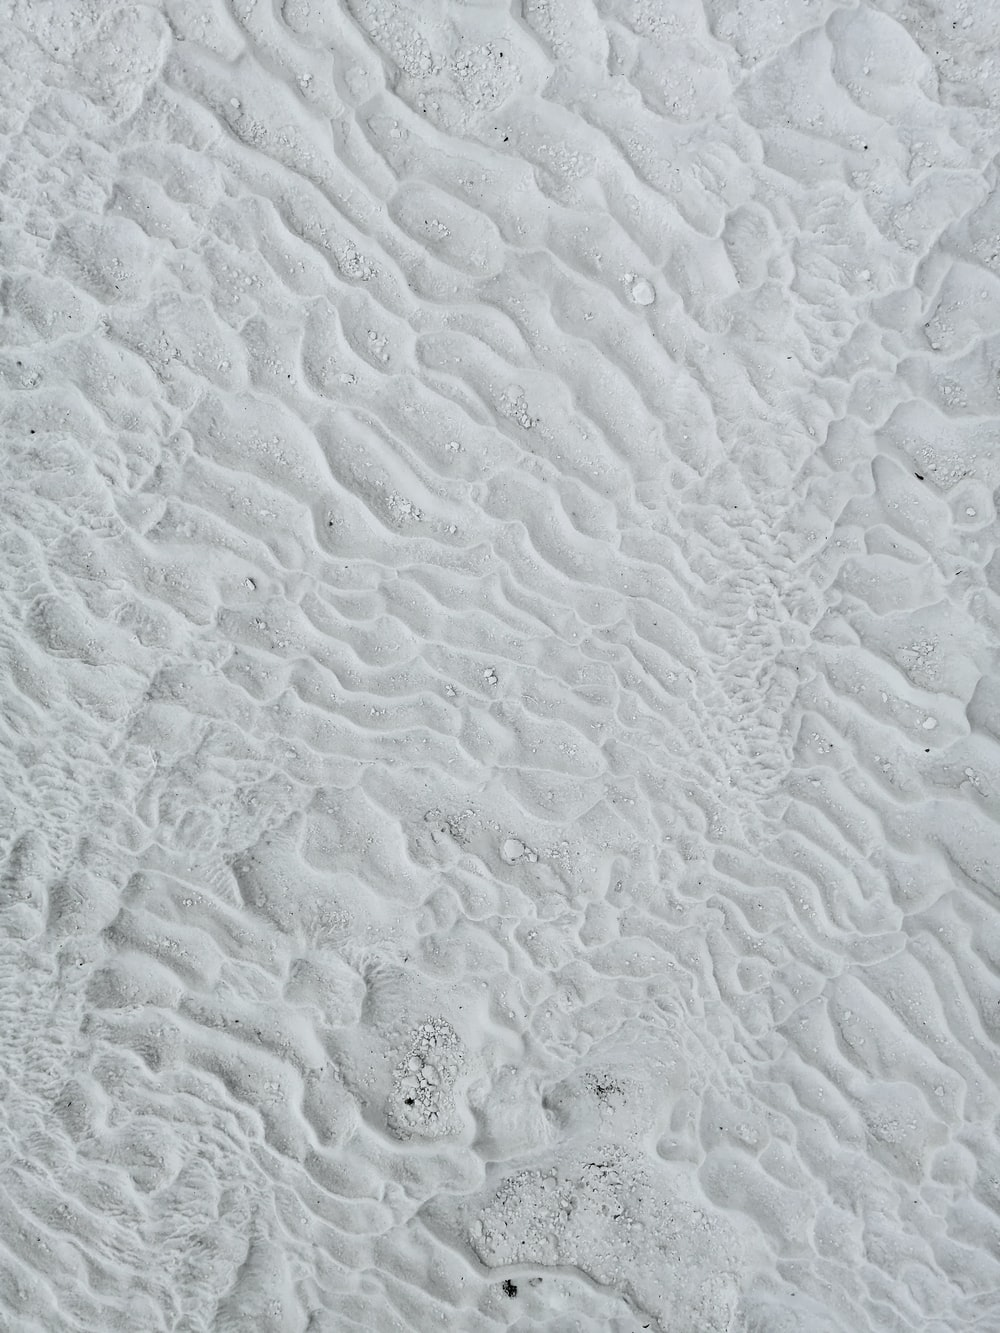 white sand with water droplets